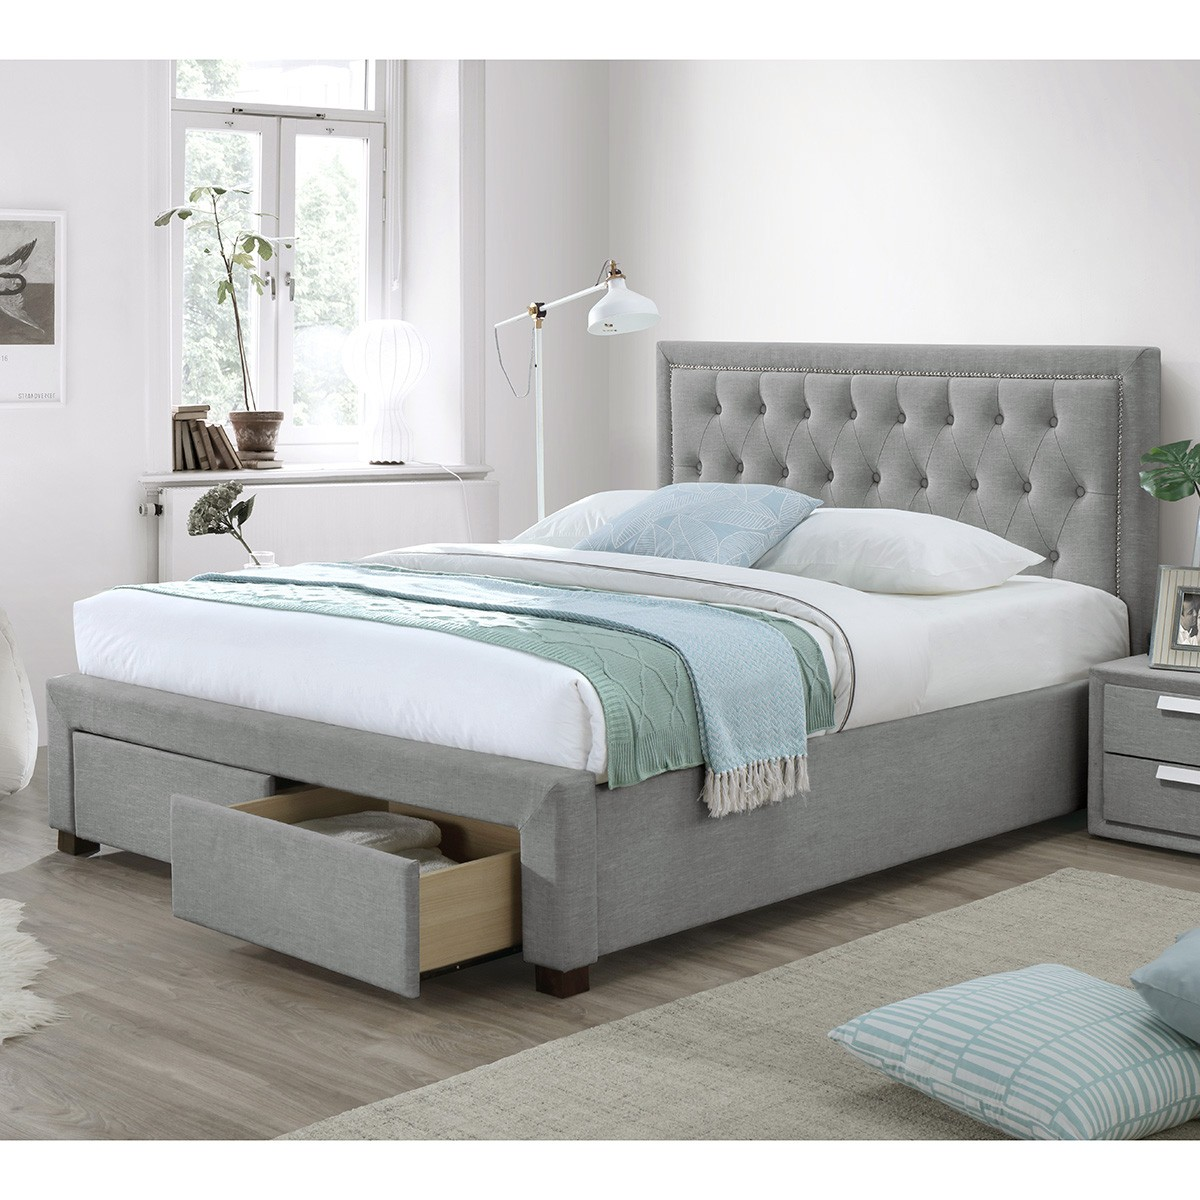 Wootton Fabric Bed with End Drawers, Queen, Grey